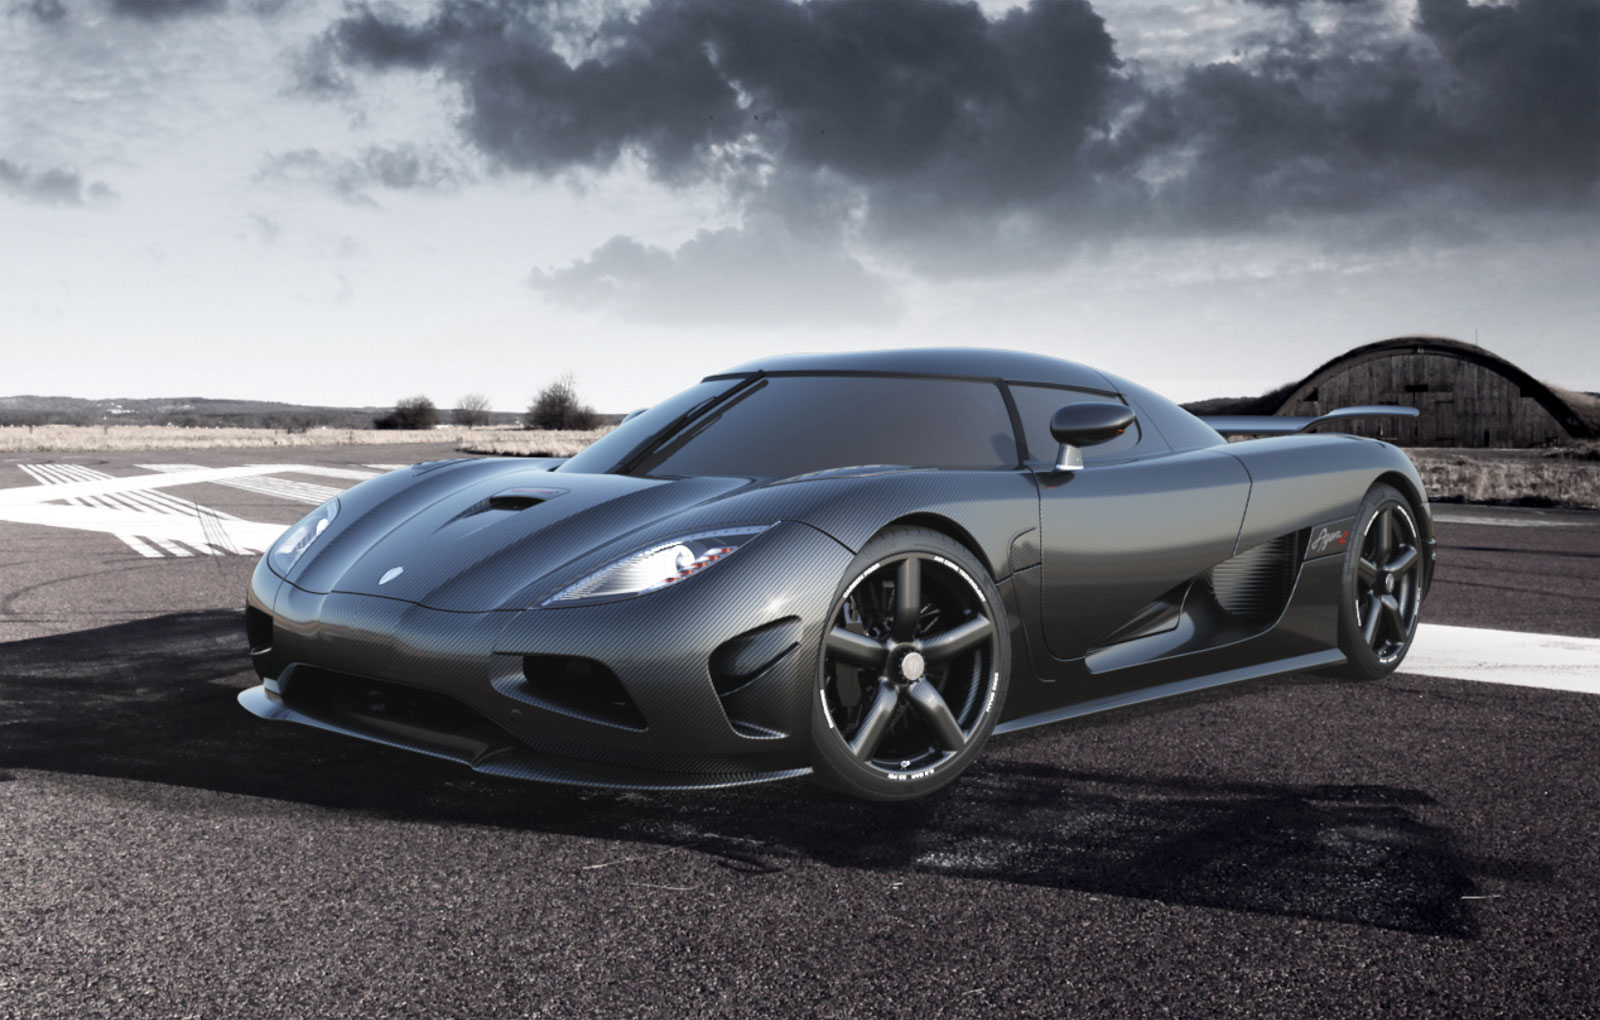 Koenigsegg Agera R hd Wallpapers 2013 1600x1020